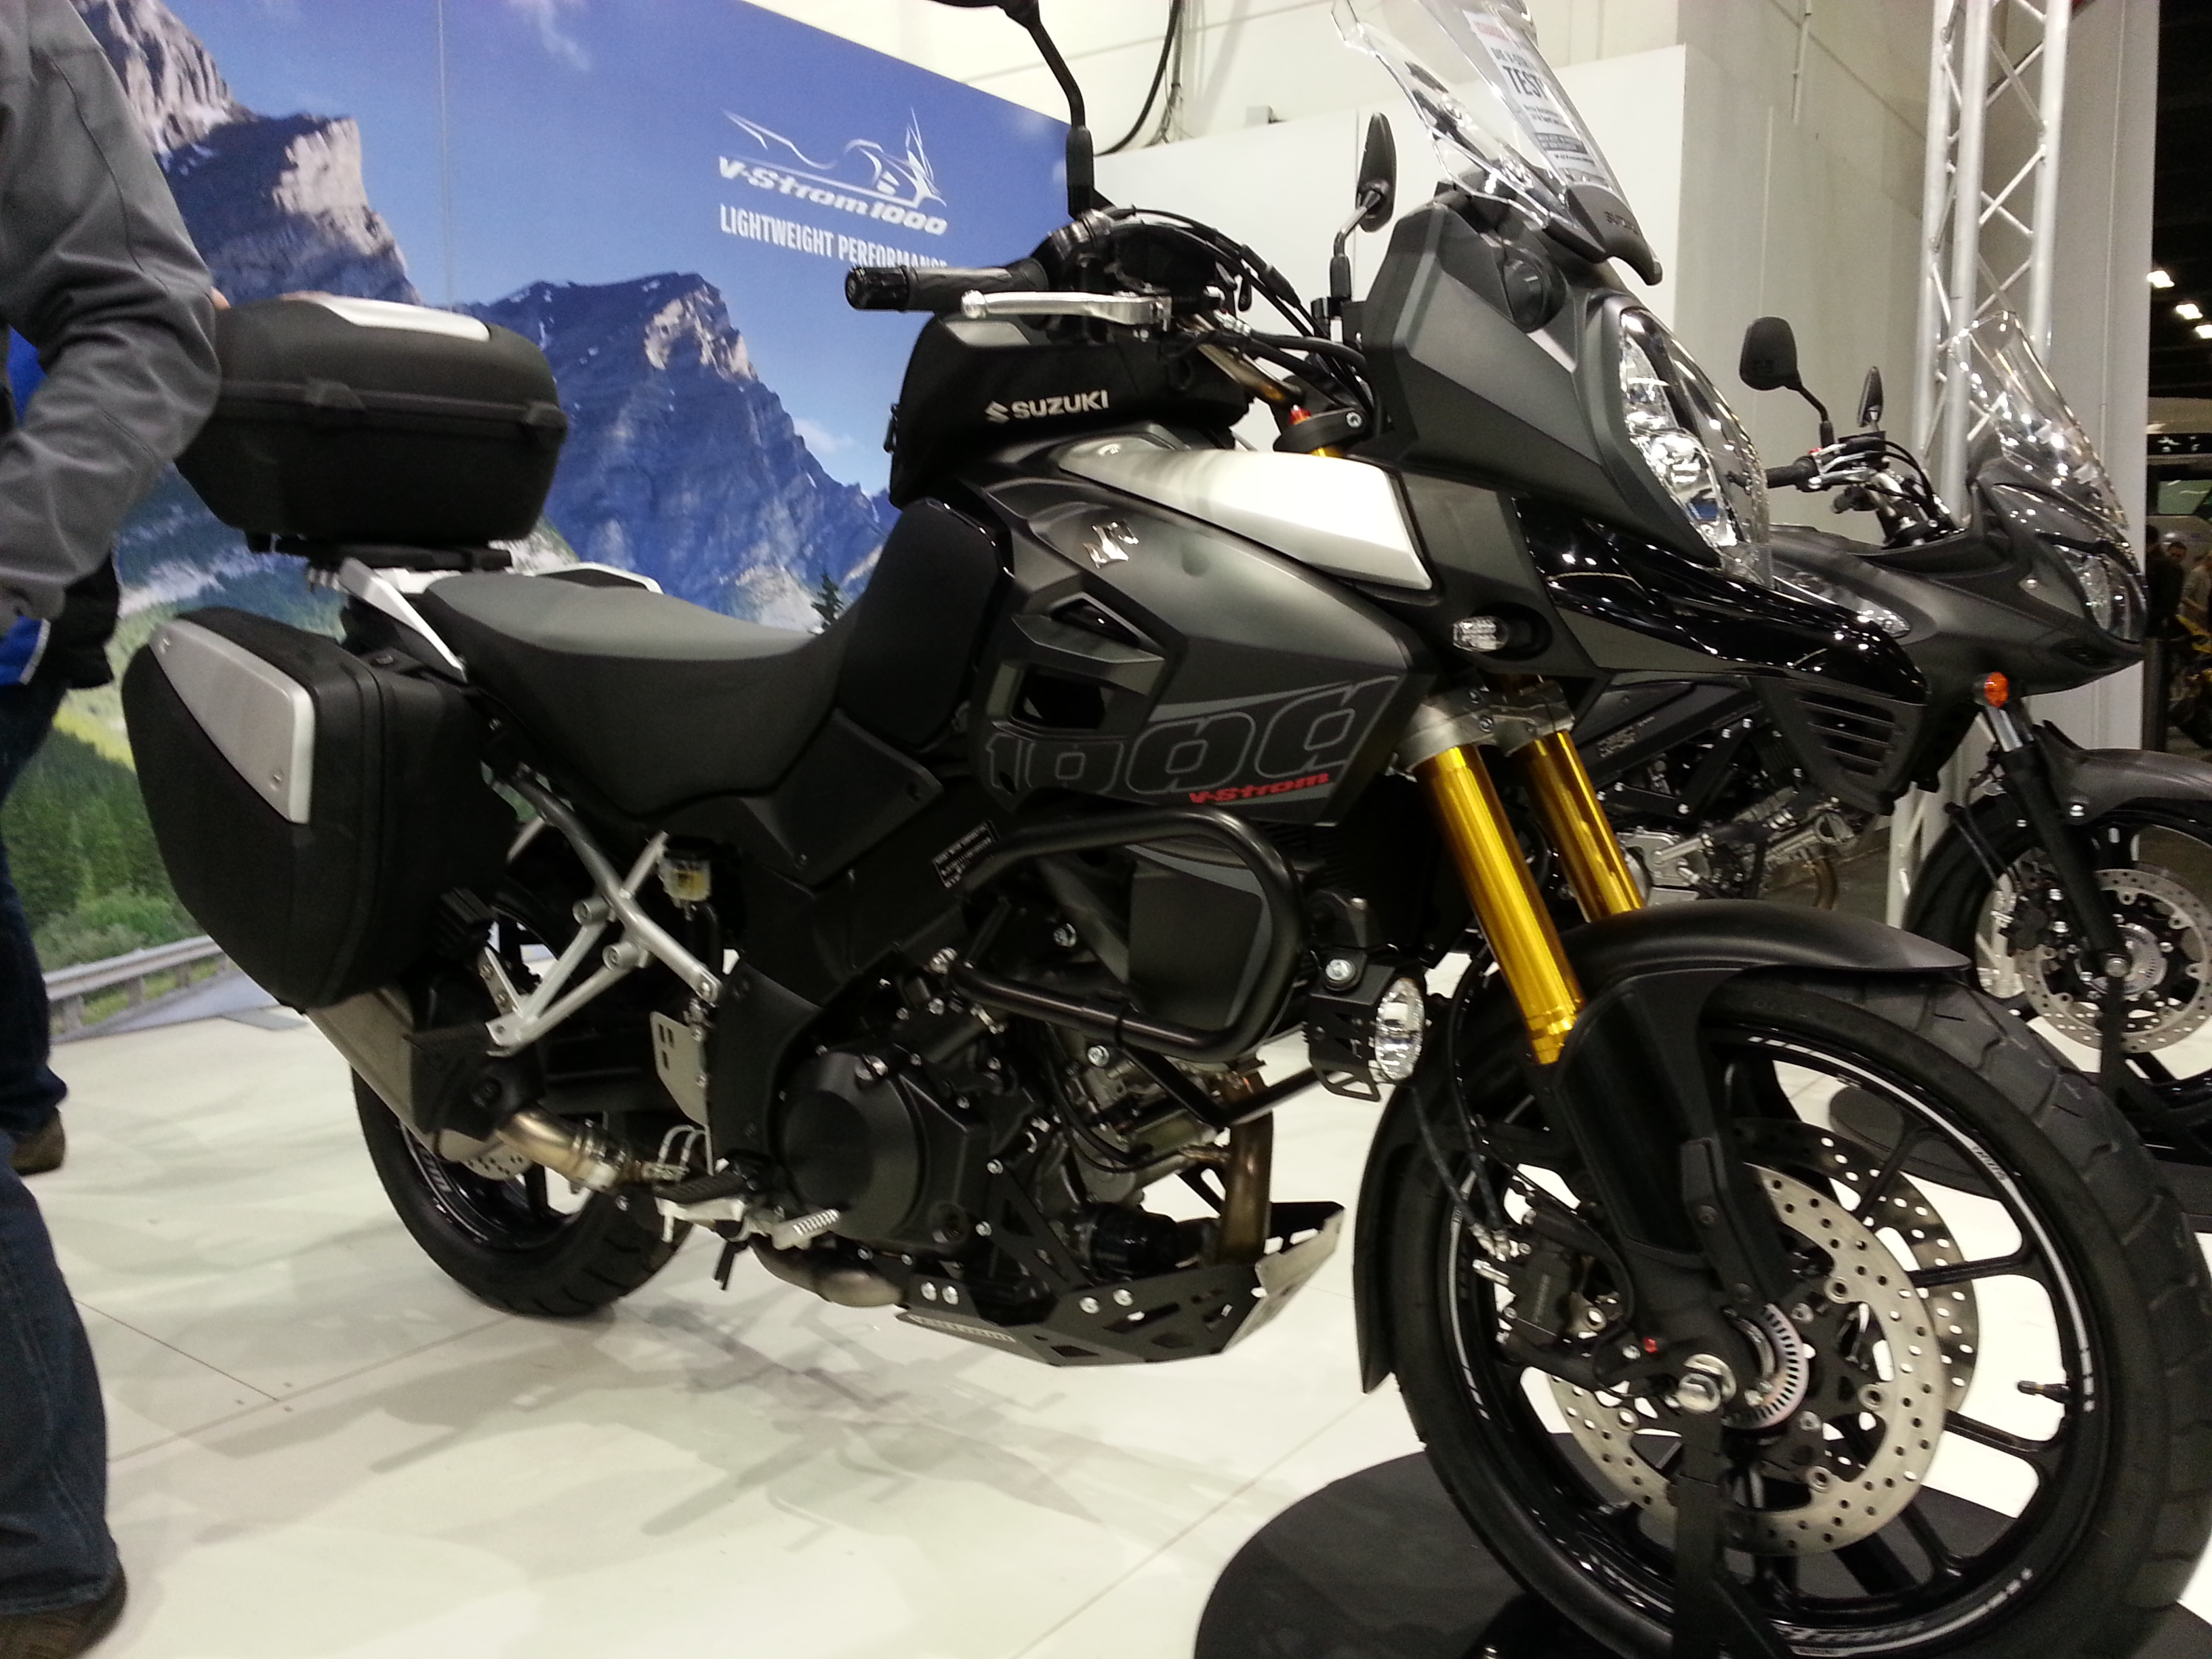 2014 suzuki v strom 1000 abs big limited offer announced autoevolution. Black Bedroom Furniture Sets. Home Design Ideas